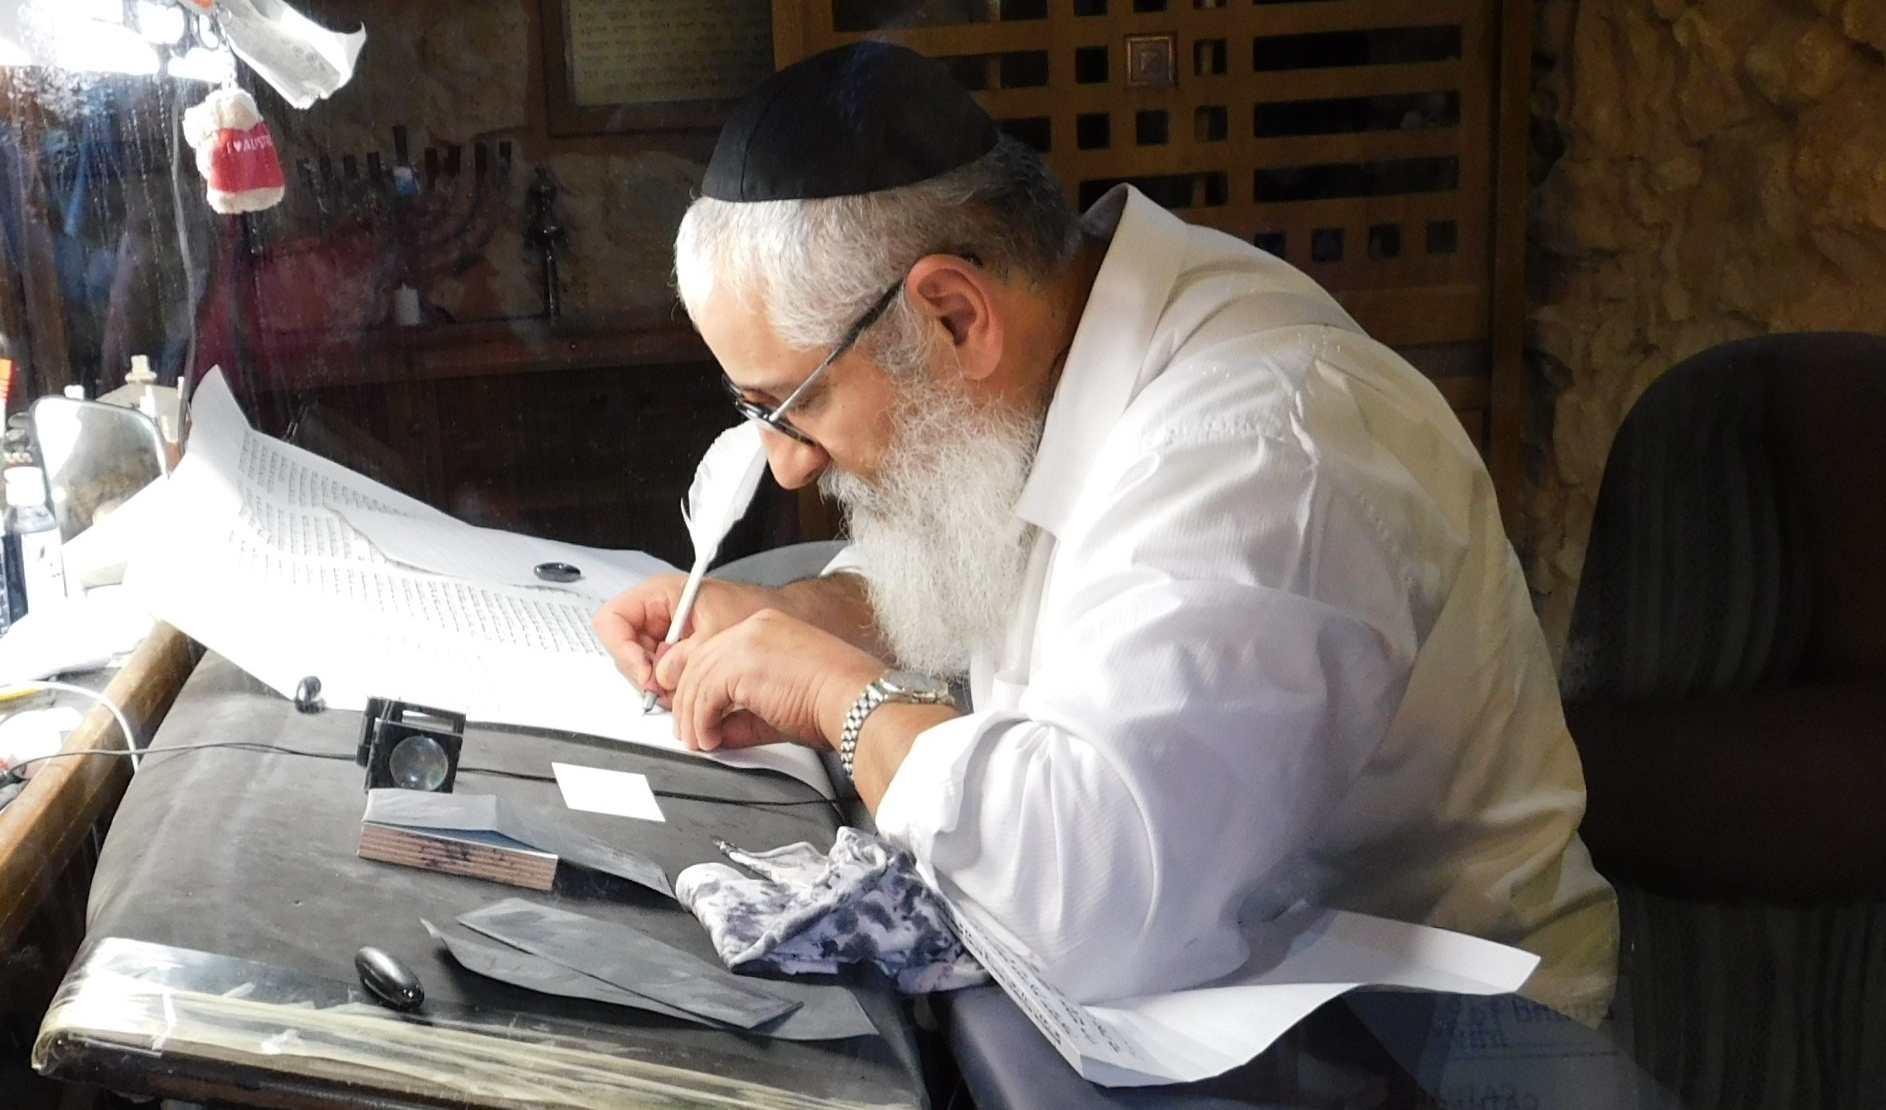 A Sofer (scribe) is writing out a Torah scroll at Masada.